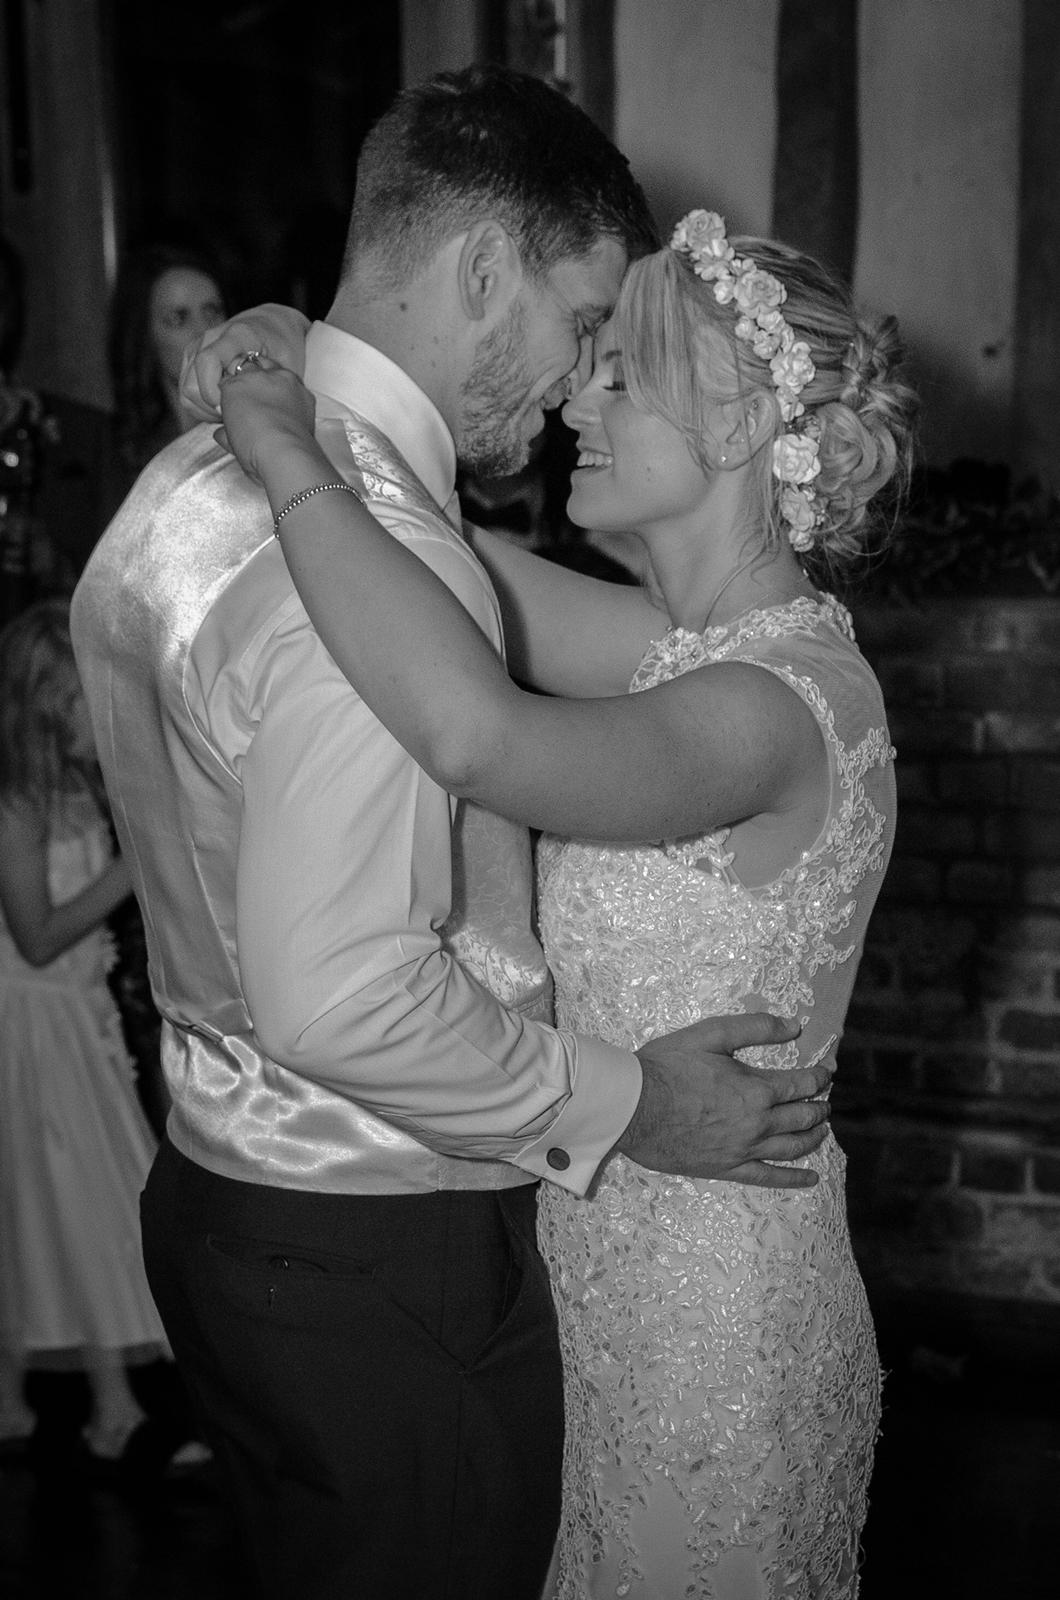 The first dance for groom and bride on wedding day